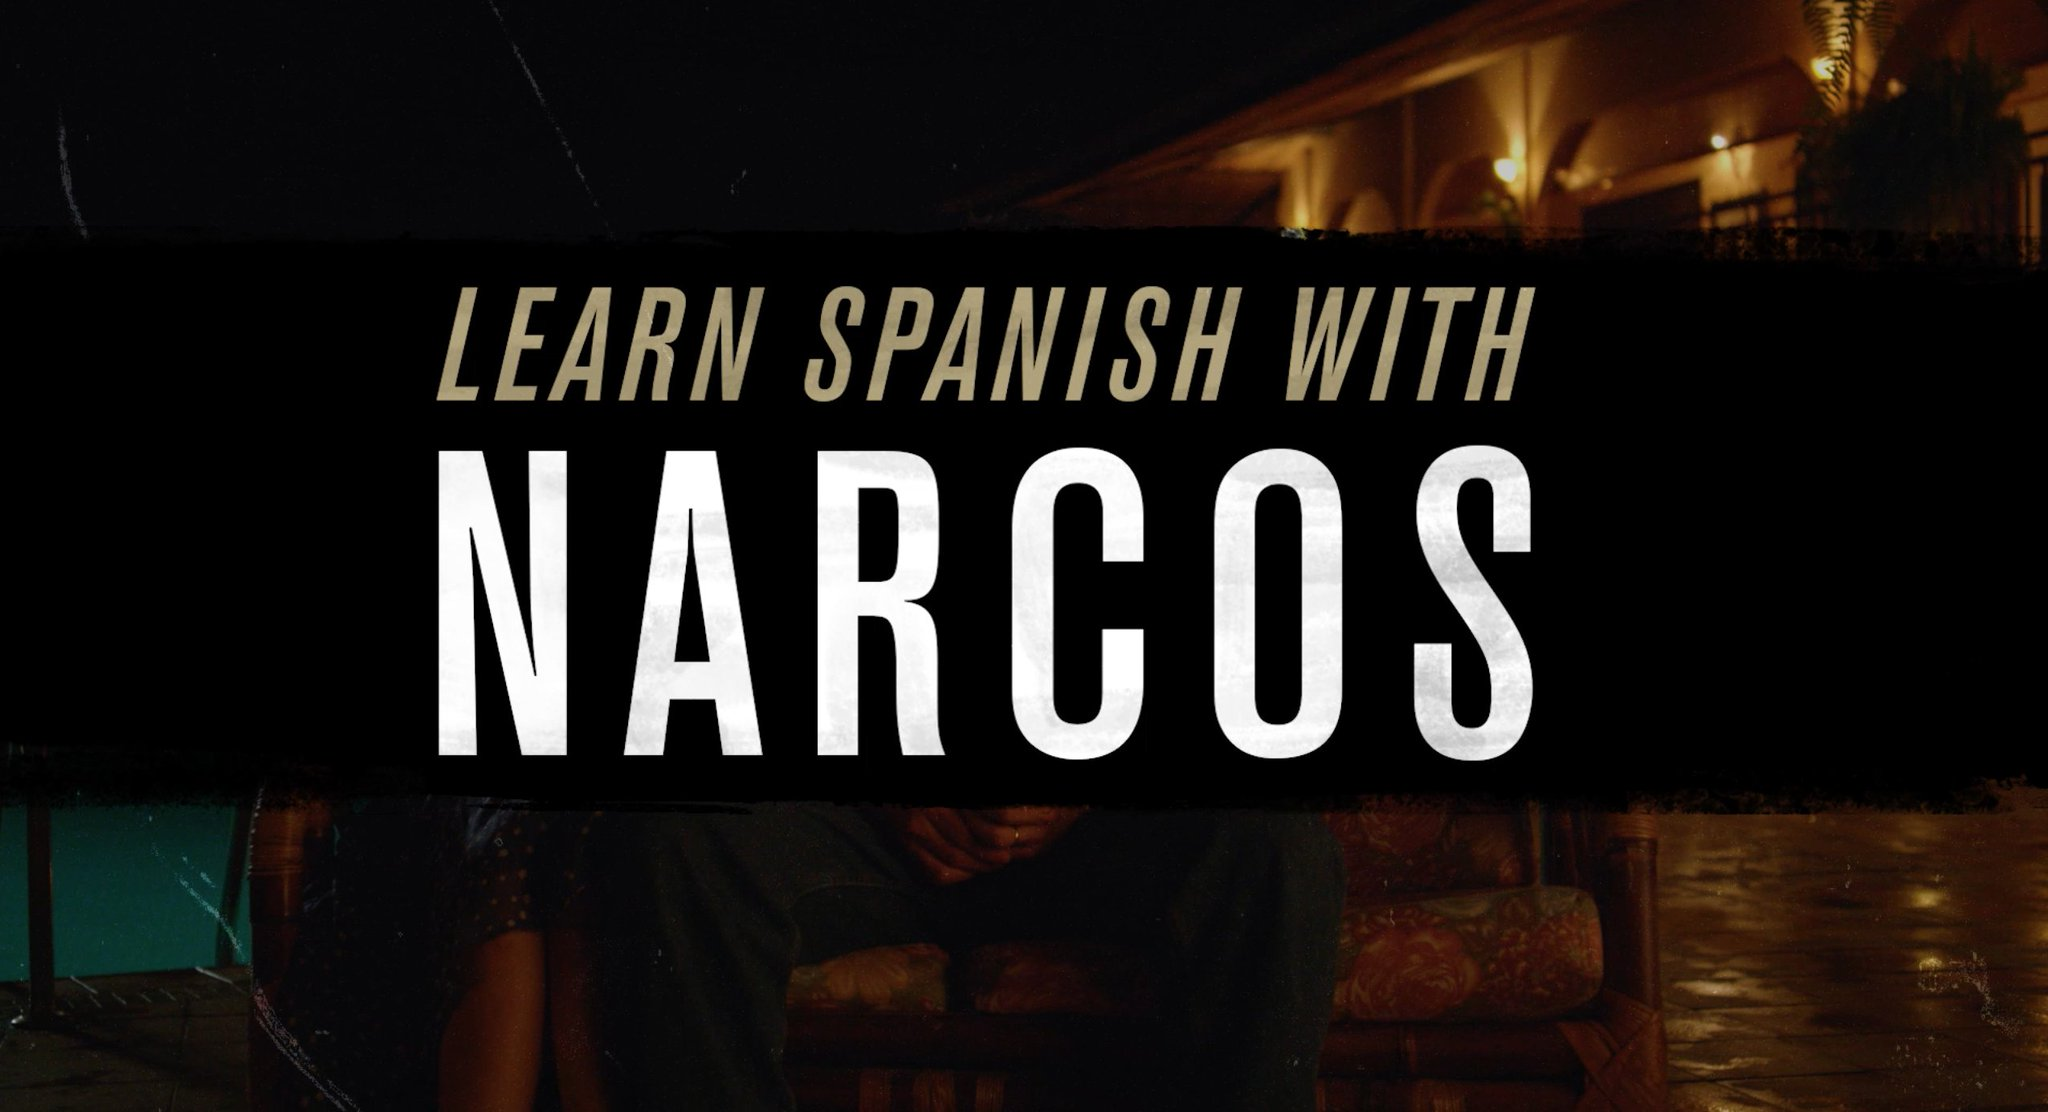 How to reply when your friends bail on your weekend plans. (by popular demand). #NarcosSpanishLessons #Narcos https://t.co/eo545LR1PU